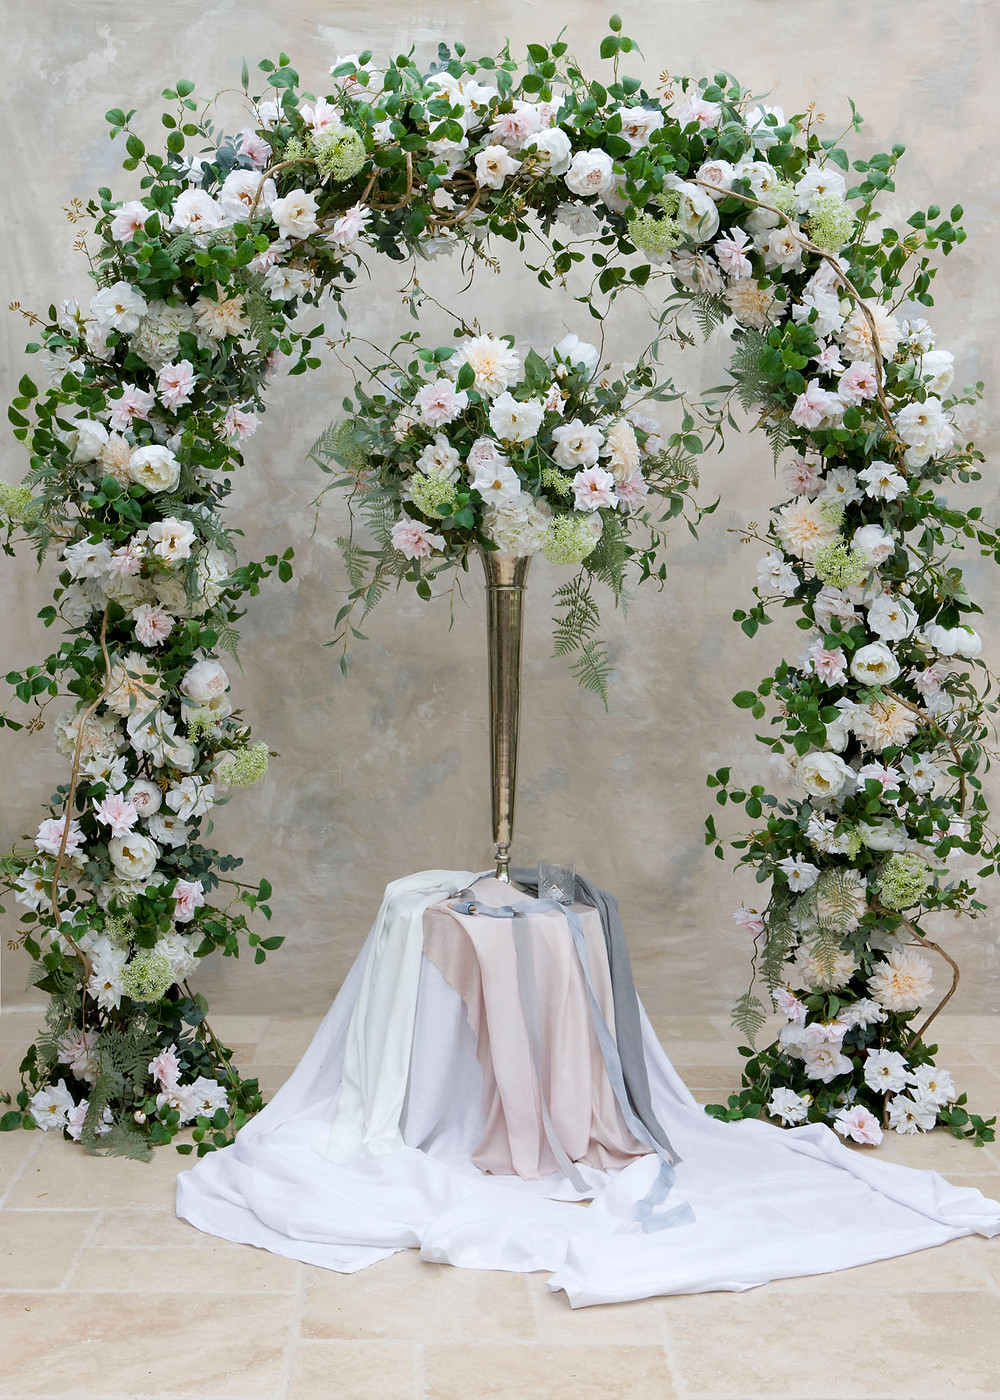 Summer Wedding Faux flower arch and Table Centrepiece for hire in Essex